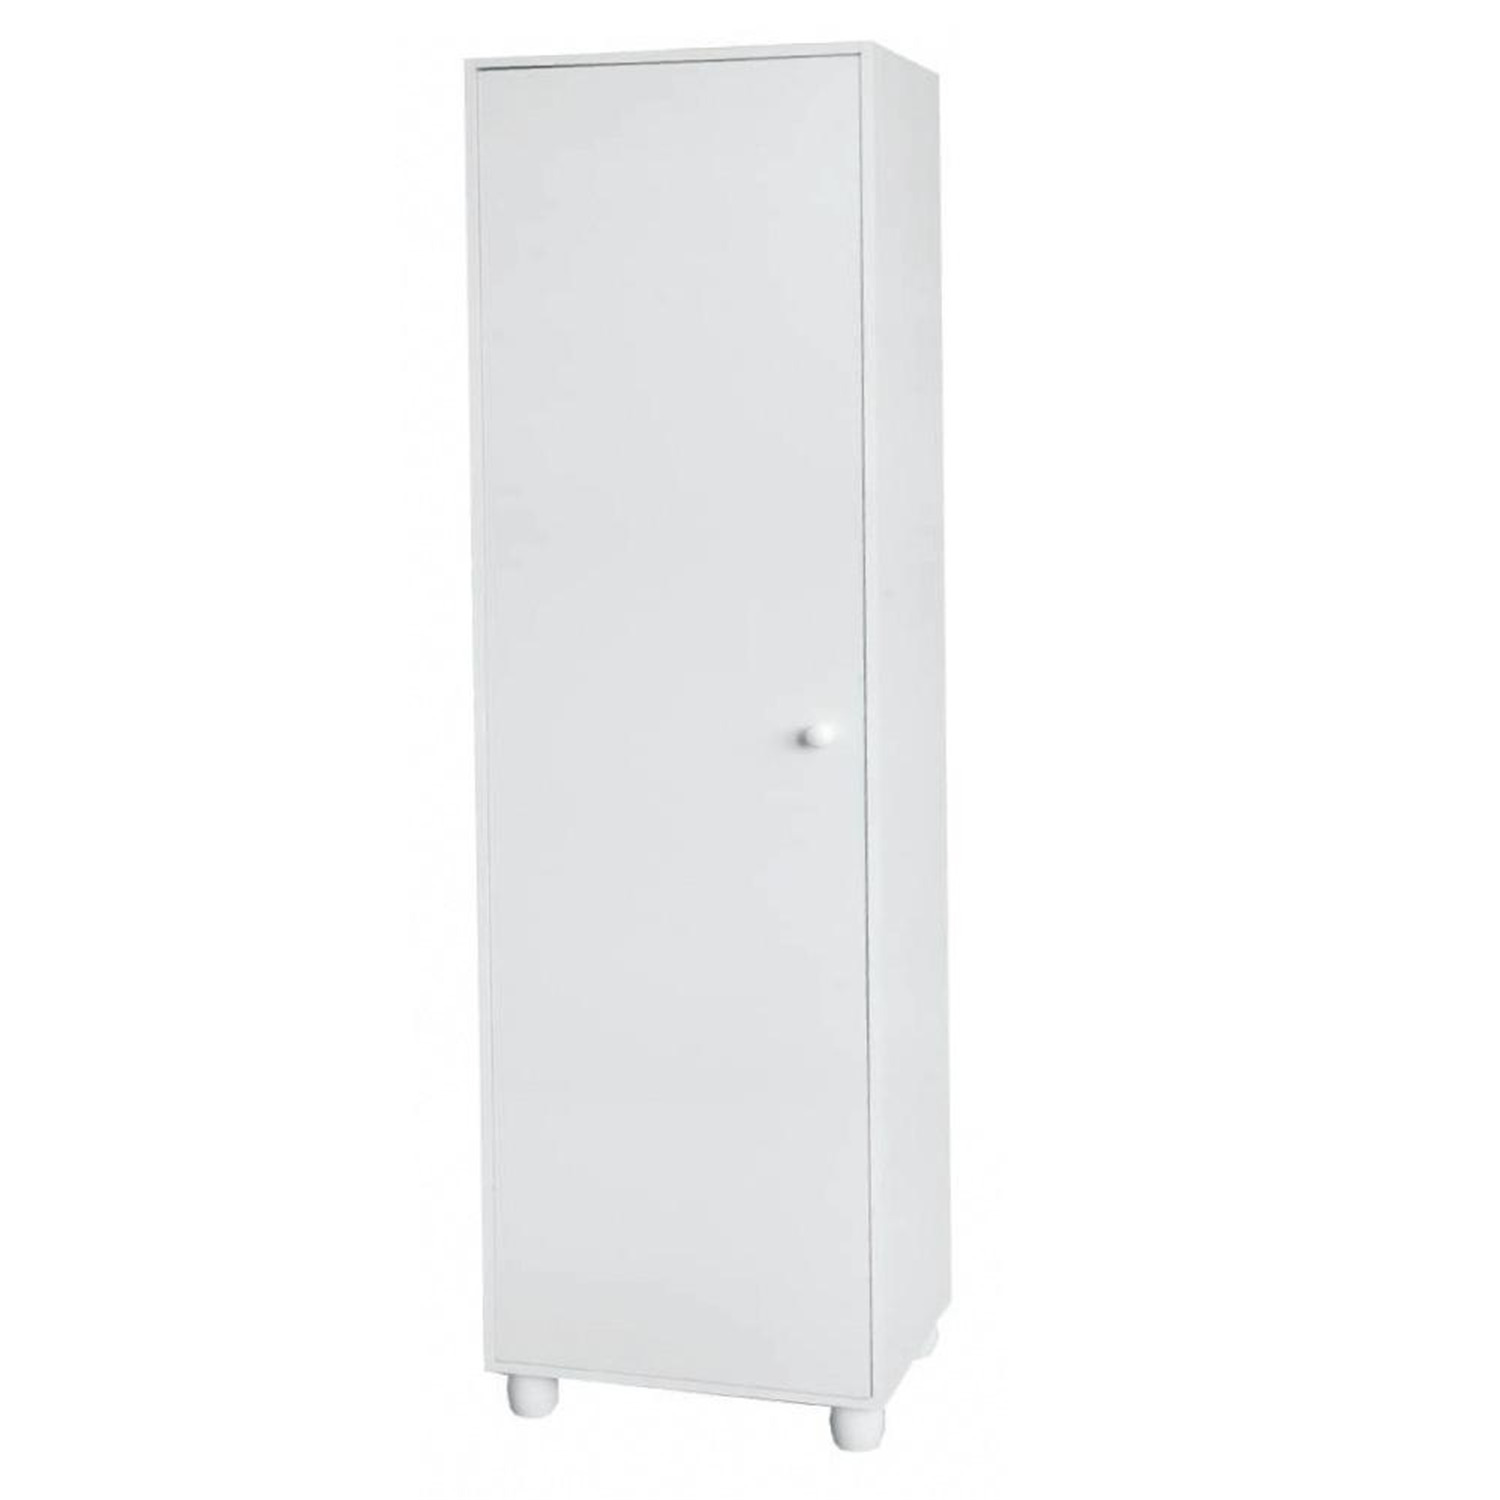 Home source 1 door storage cabinet white by oj commerce for 1 door storage cabinet